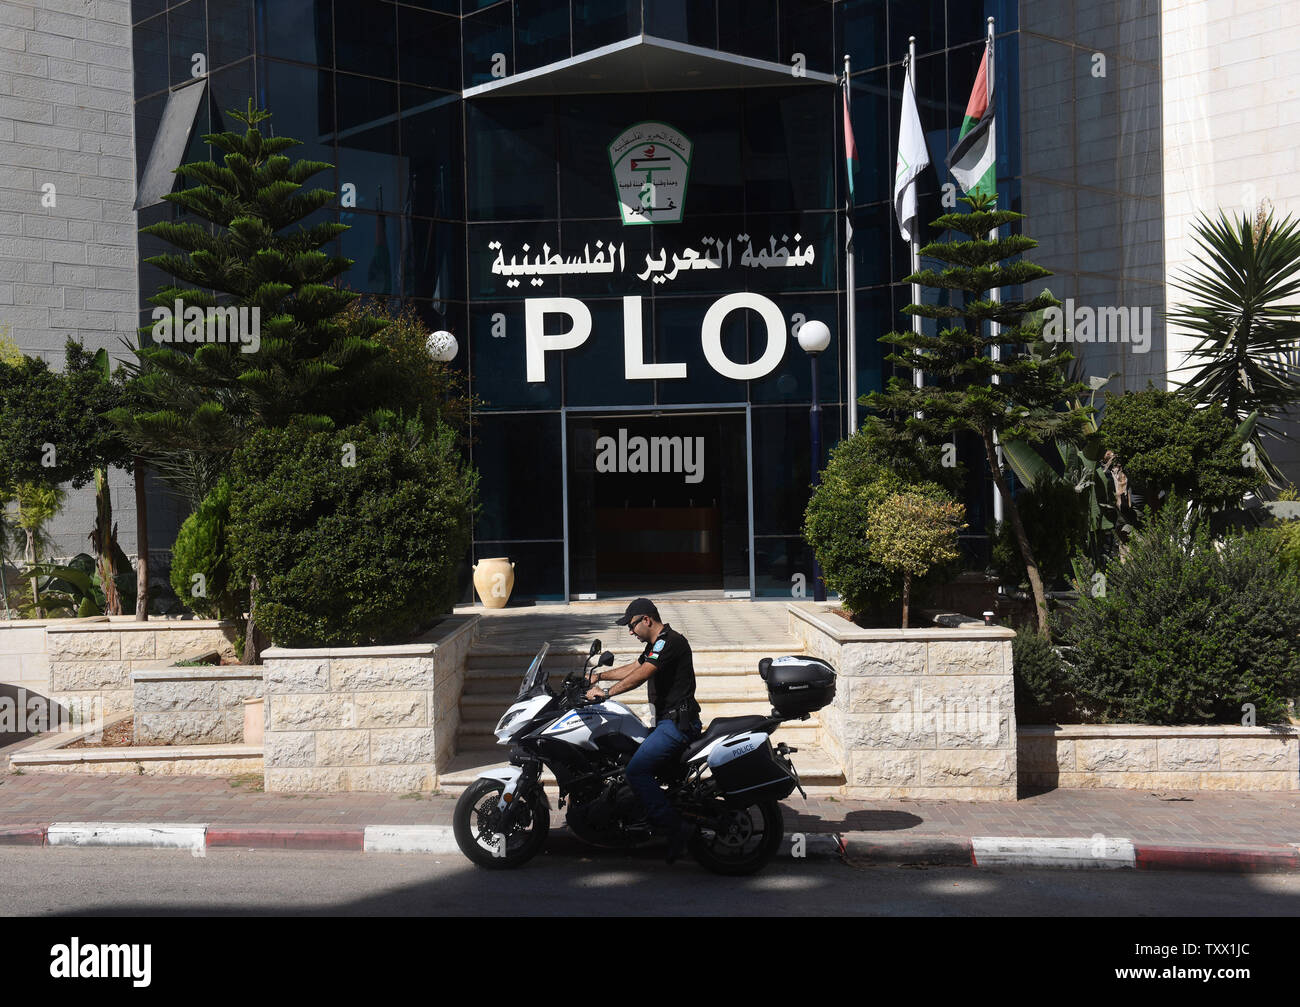 A Palestinian rides a motorcycle outside the PLO, Palestinian Liberation Organization, headquarters in Ramallah, West Bank, September 17, 2018. According to a PLO statement, U.S. authorities told employees of the PLO office in Washington,D.C. to cease operations, close all bank accounts and vacate the premises by Oct. 13. The visas of the Palestinian Ambassador Husam Zomlot and his family were revoked by American authorities who demanded they  leave the country.   Photo by Debbie Hill/UPI Stock Photo